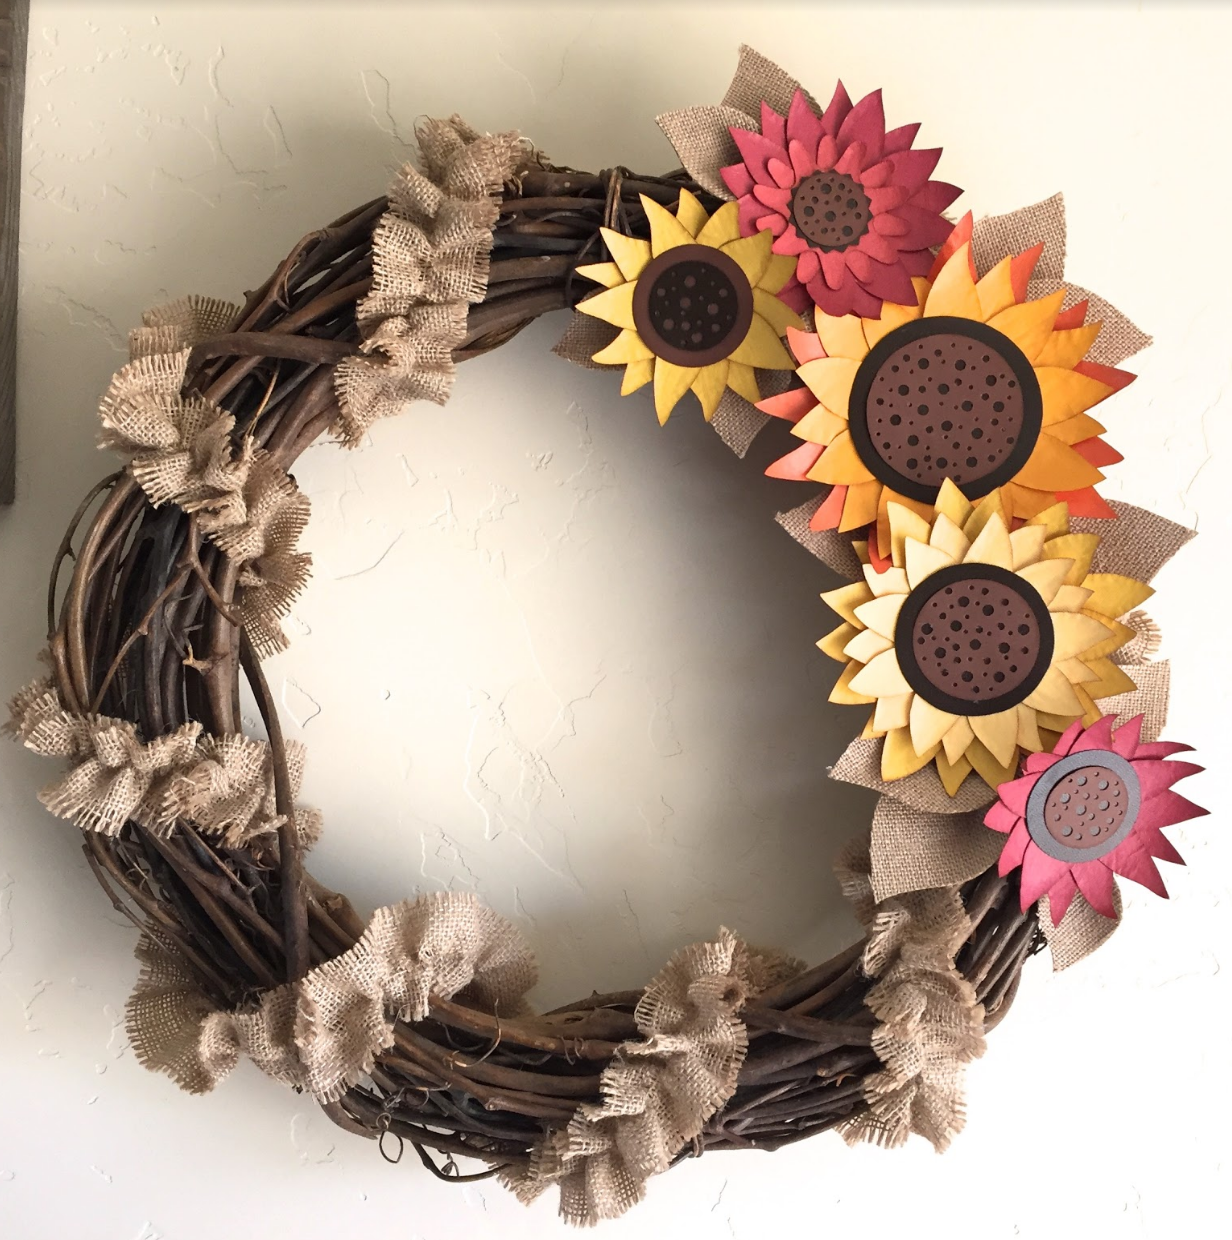 Fall Wreath - Home decor